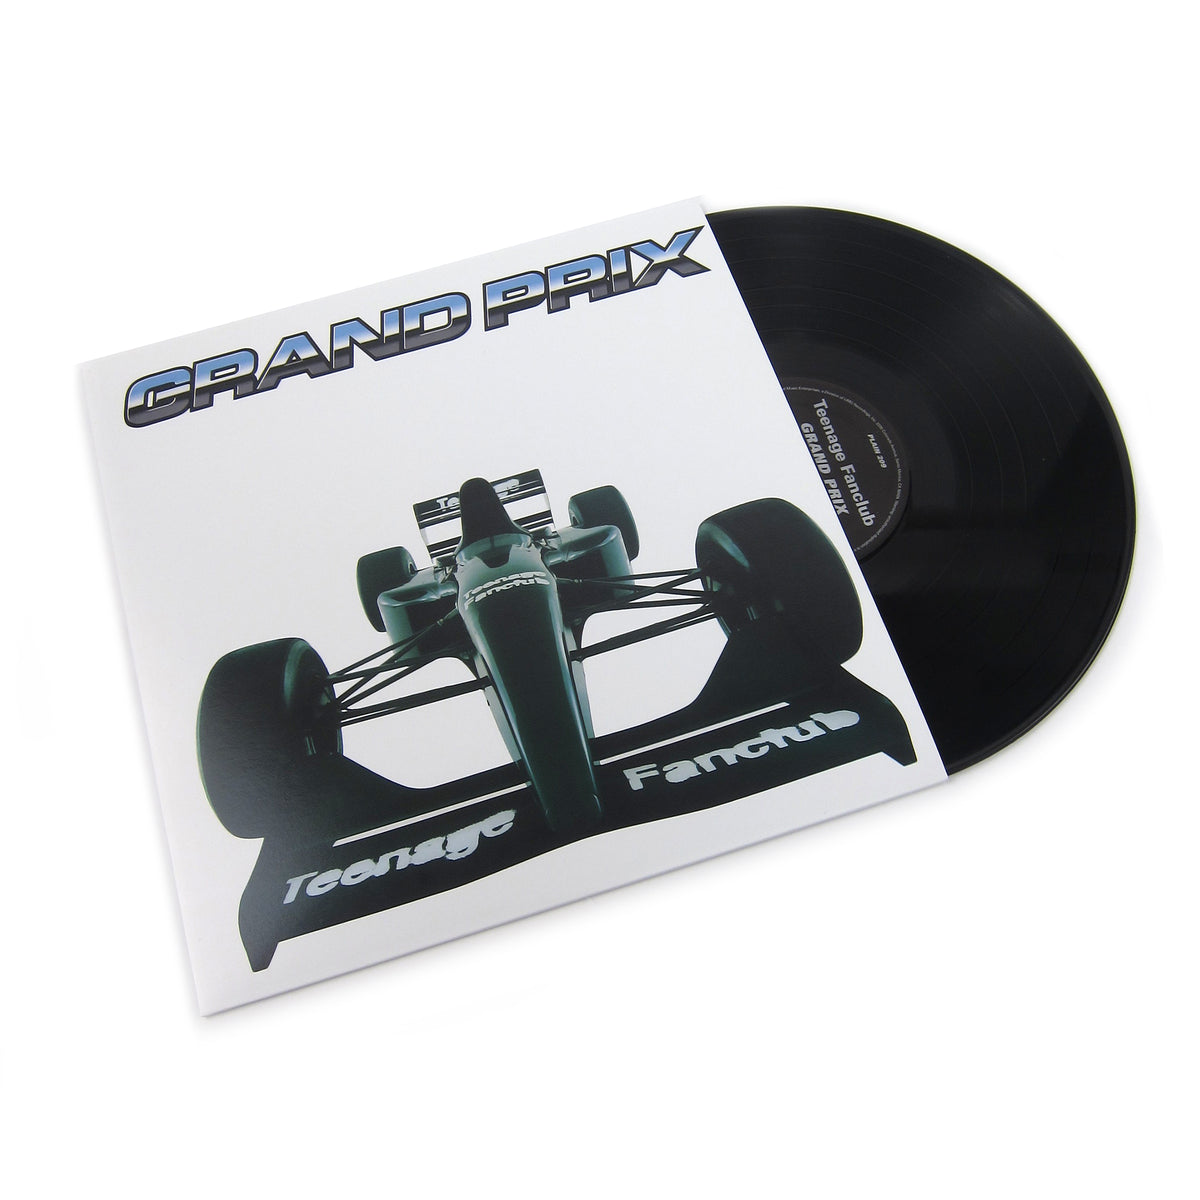 Teenage Fanclub: Grand Prix (180g) Vinyl LP